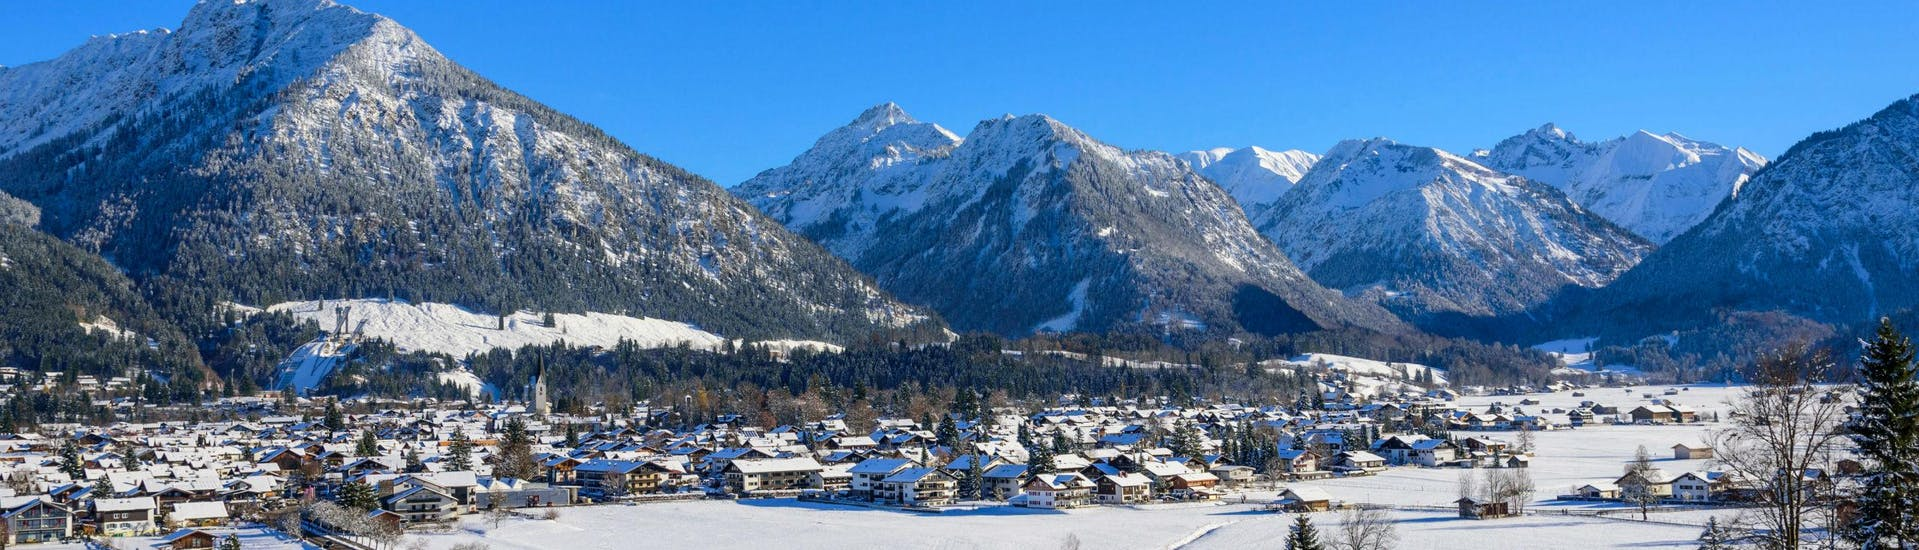 A view of the picturesque village of Oberstdorf, nestled between the Bavarian mountains, where local ski schools offer a range of different types of ski lessons.